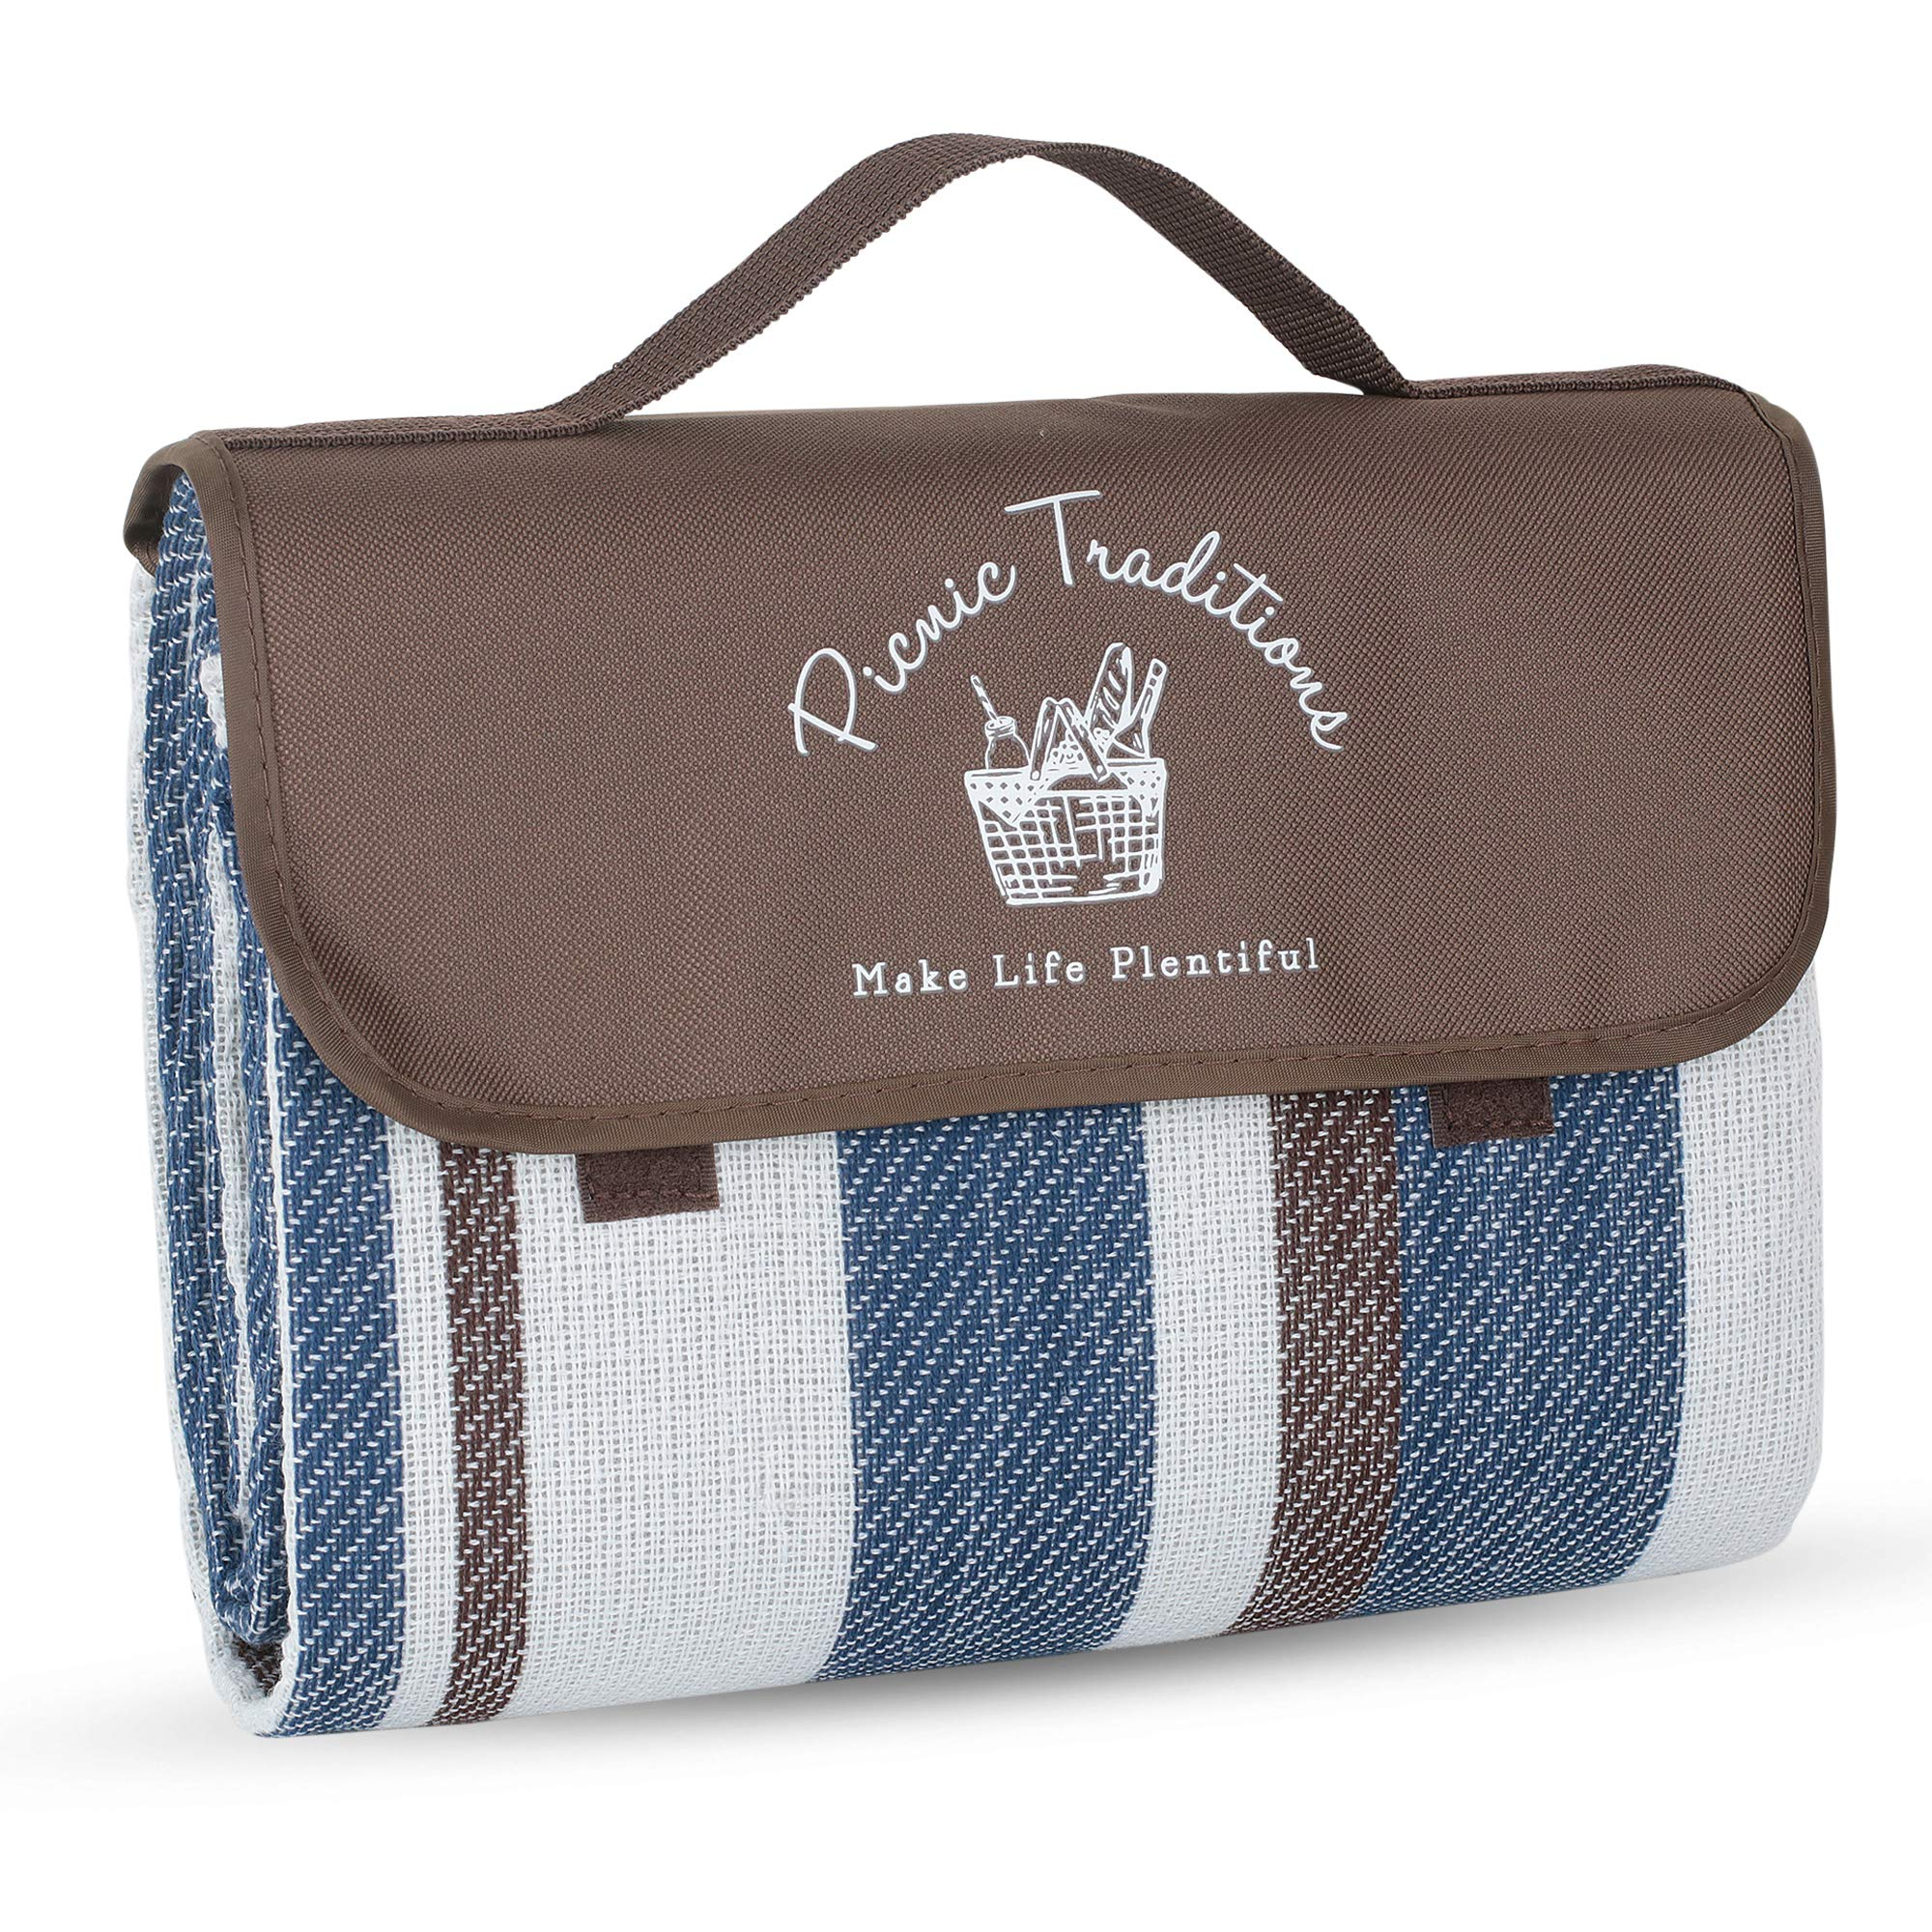 Picnic Traditions Large Picnic Blanket Water Resistant Tote - Great for Picnics, Camping on Grass, at The Beach, Tailgating at Stadiums, Durable Mat has Waterproof PEVA Backing - 69 x 53 in. (Brown)